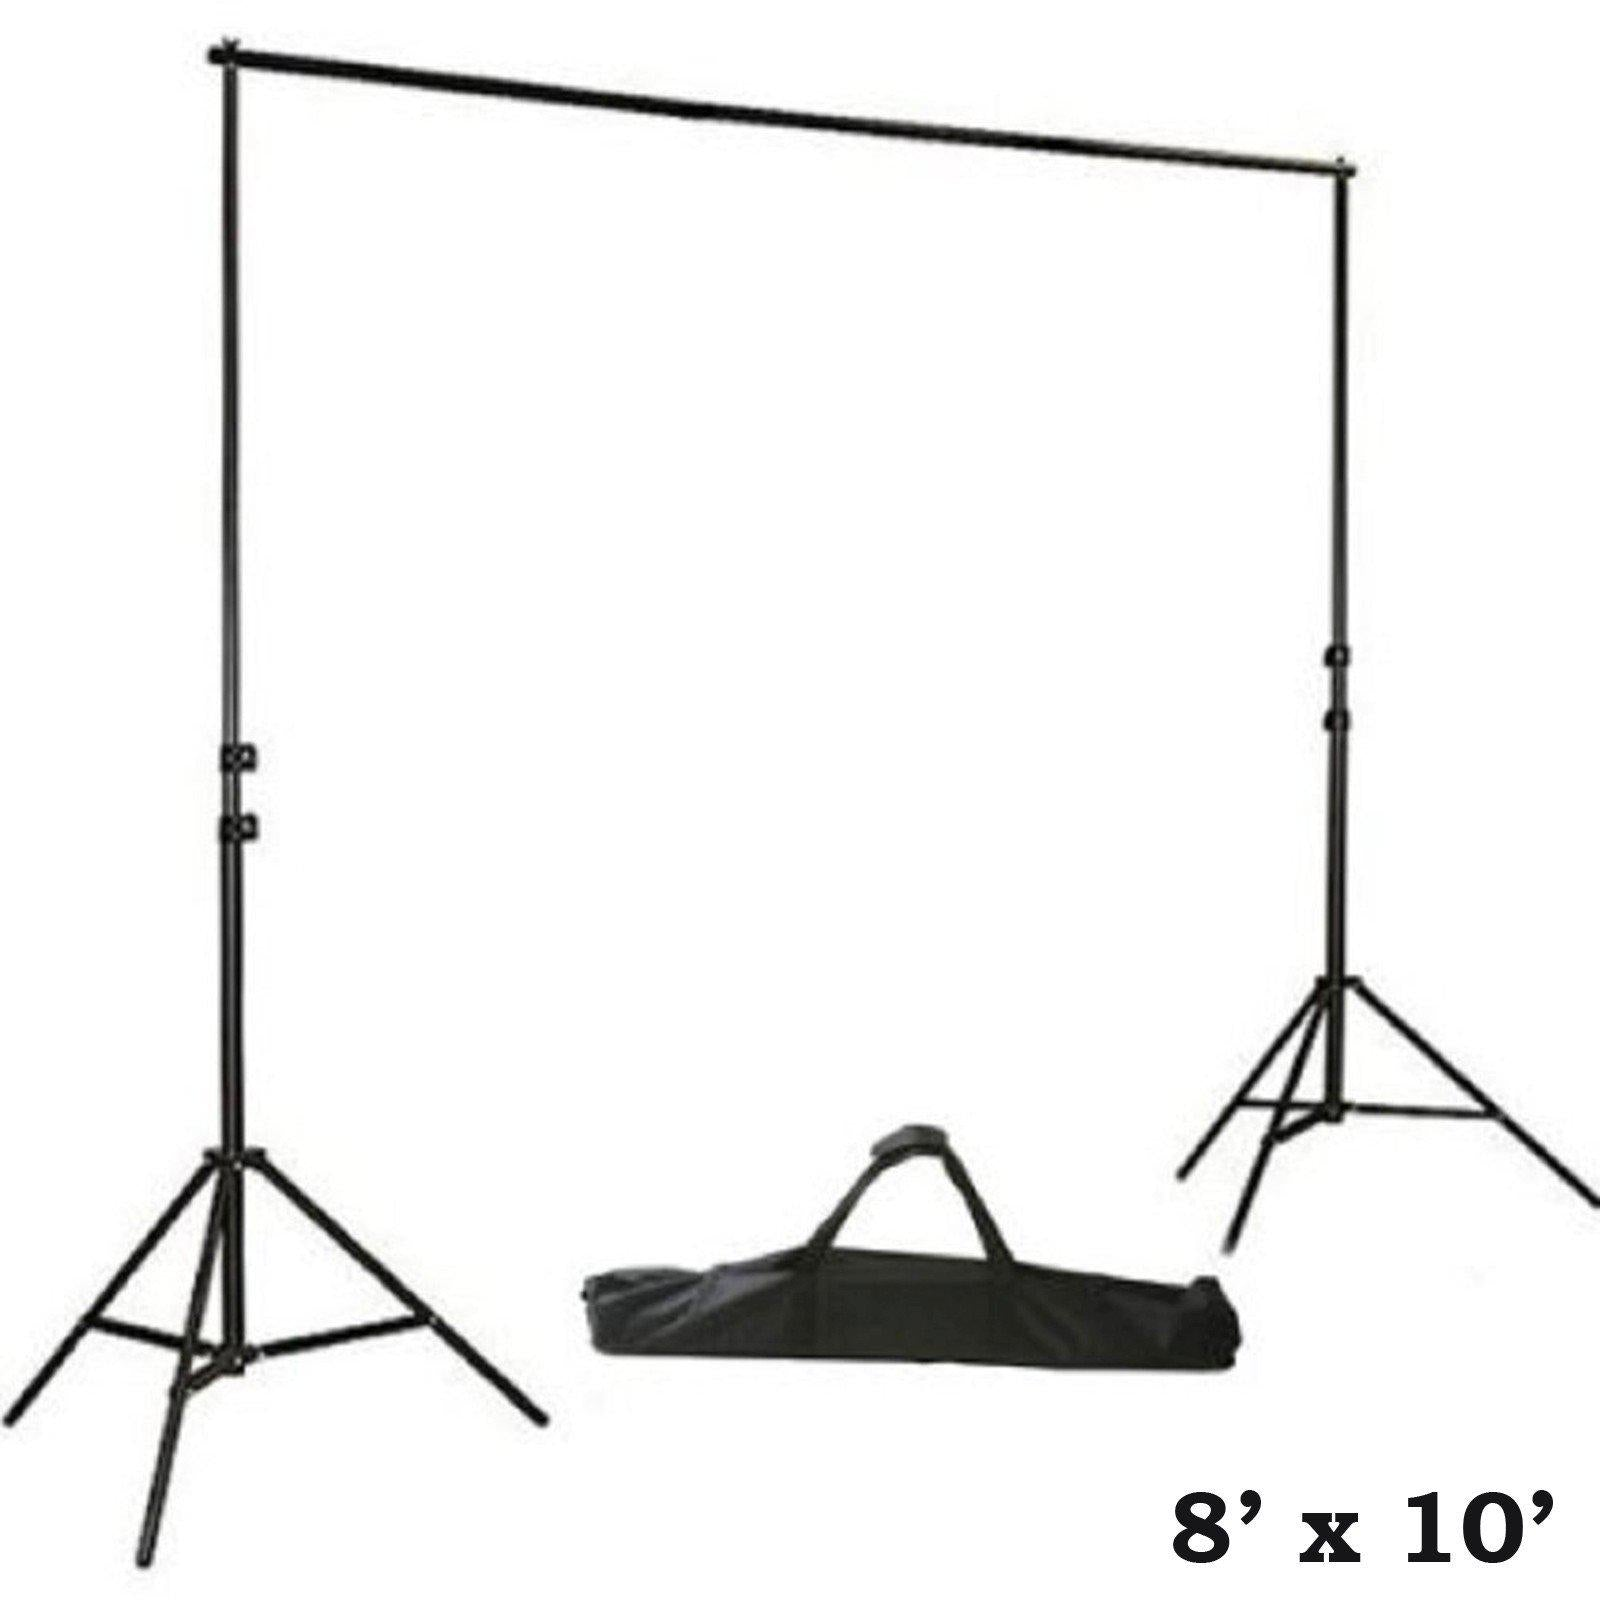 pipe and crossbar p kit backdrop drapes pipes x base stand upright drape set